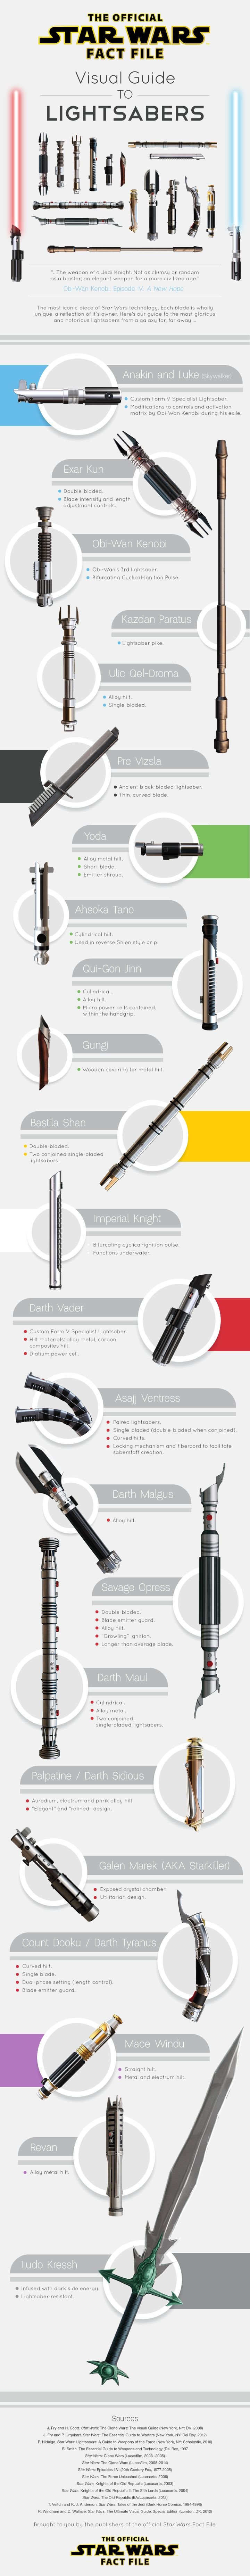 The Official Star Wars Fact File - Visual Guide To Lightsabers